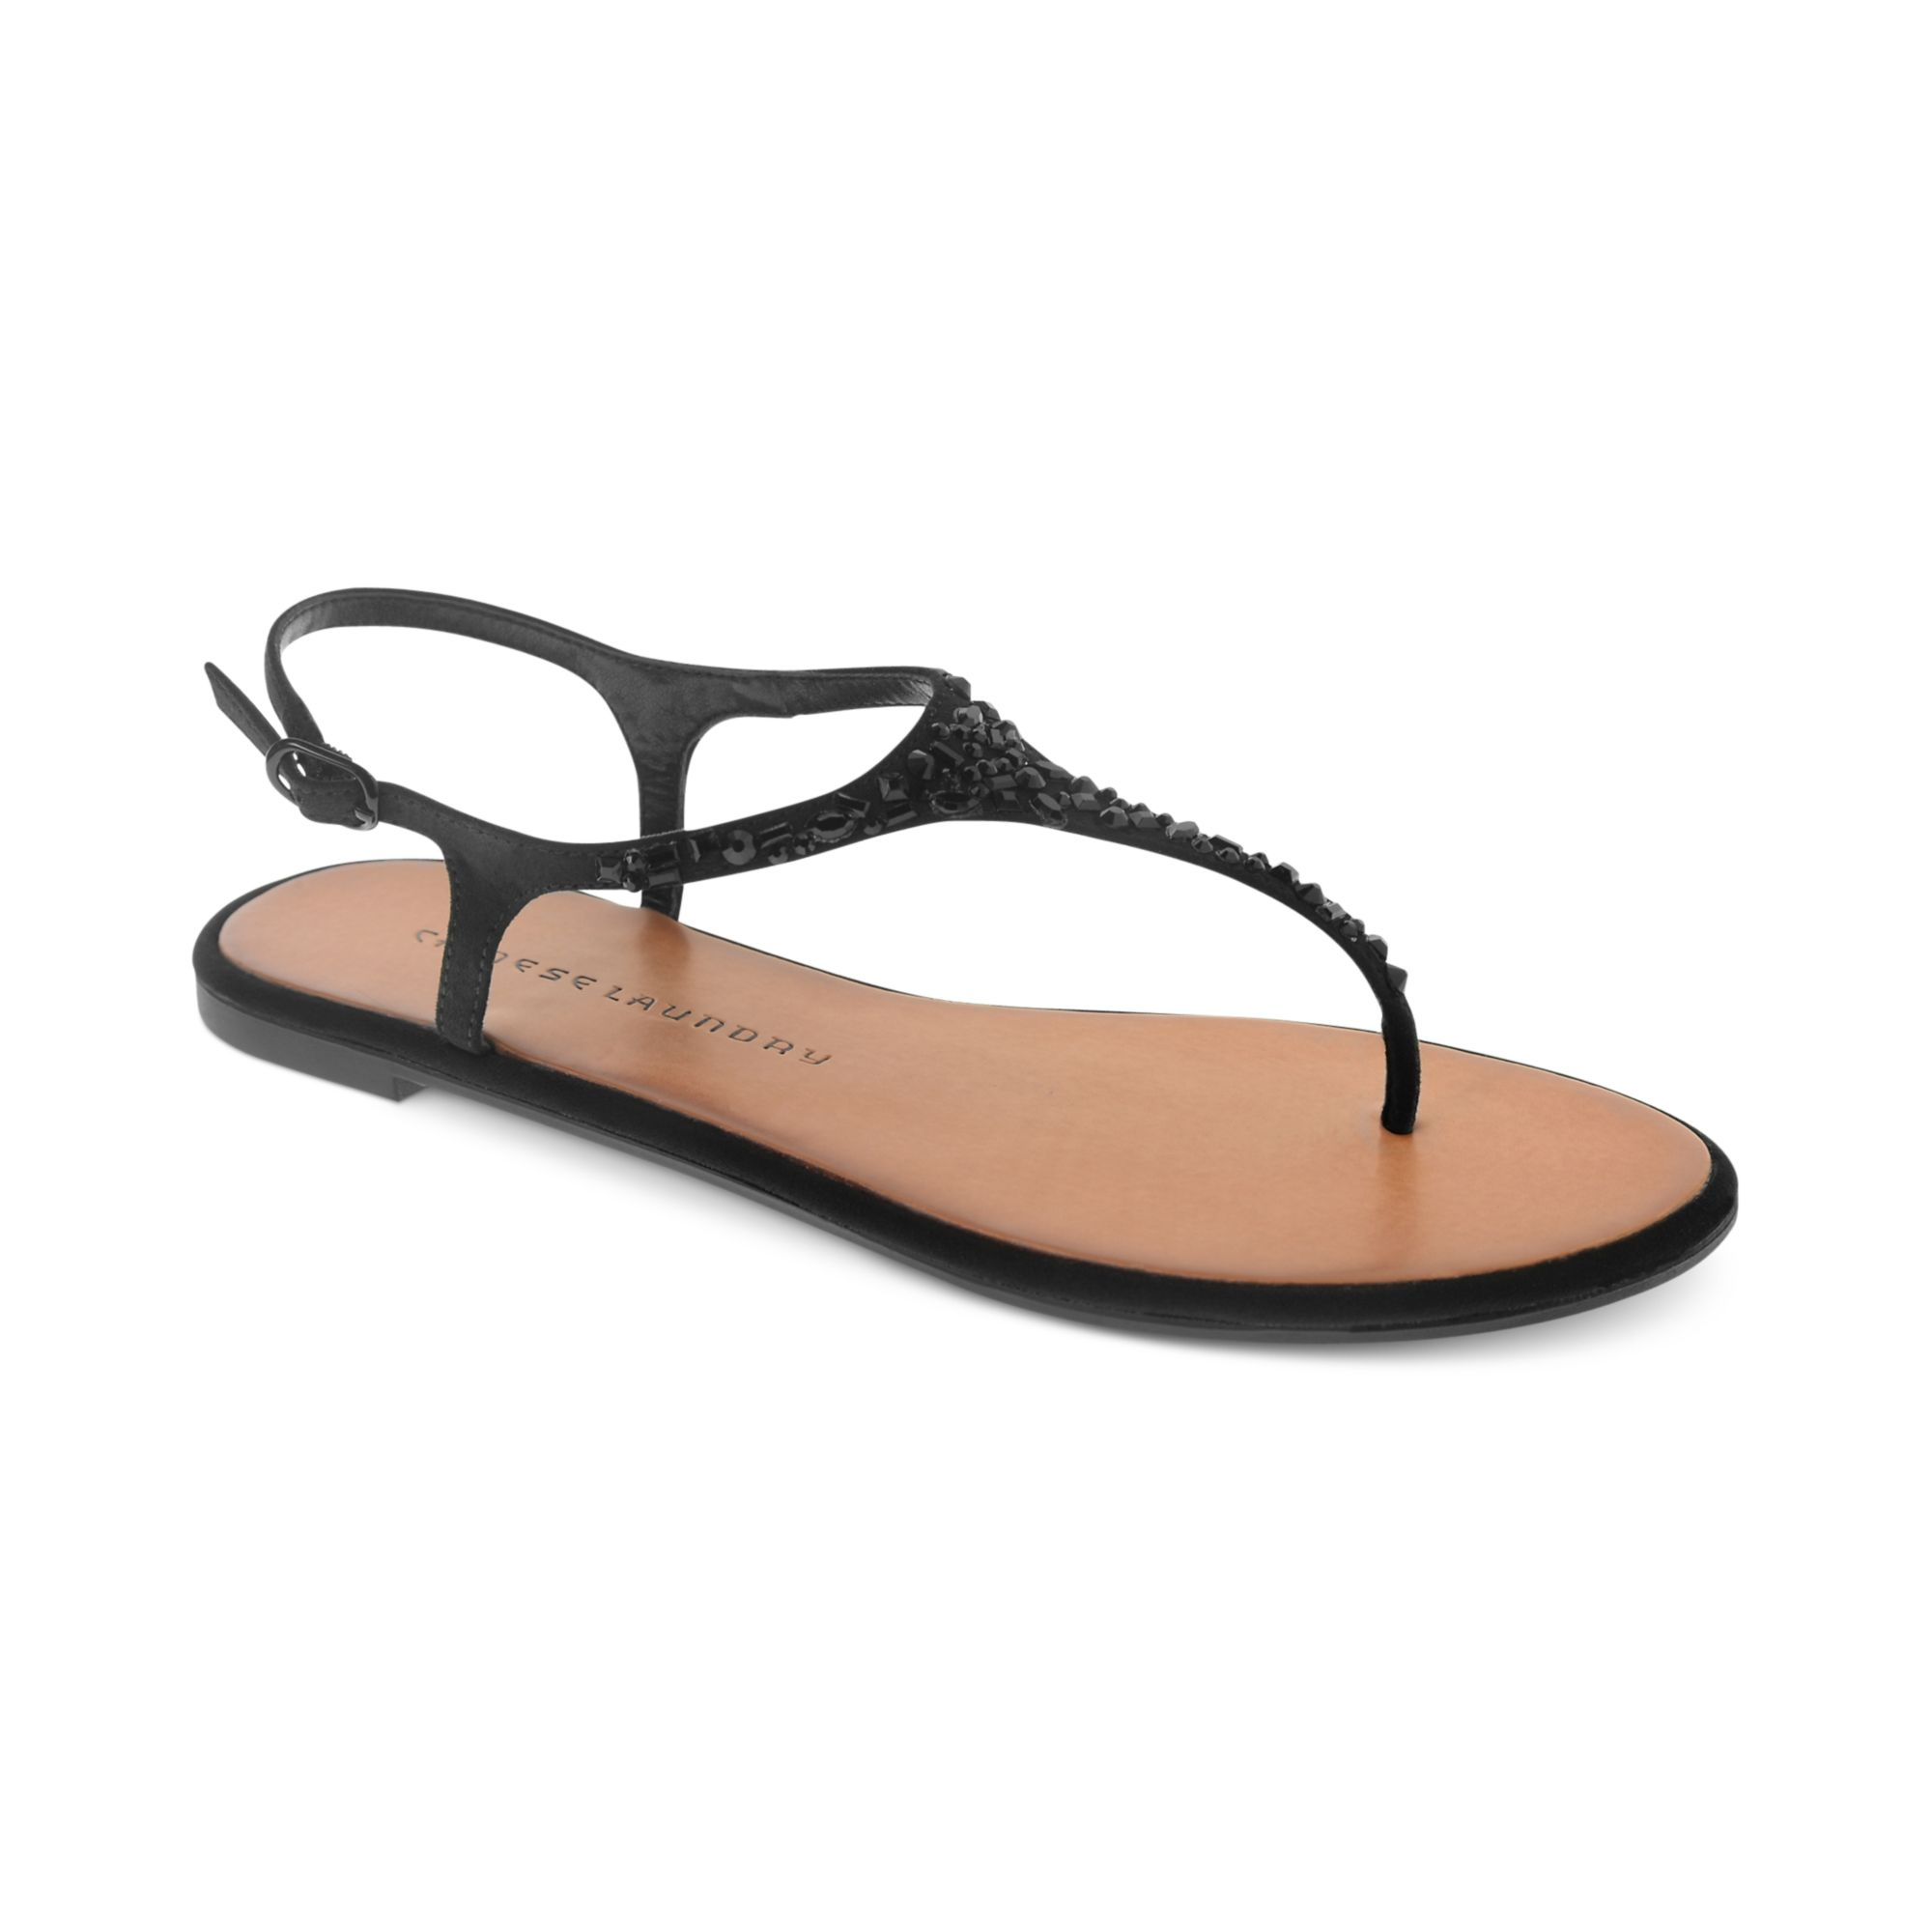 Lyst - Chinese Laundry Glisten Flat Thong Sandals in Black